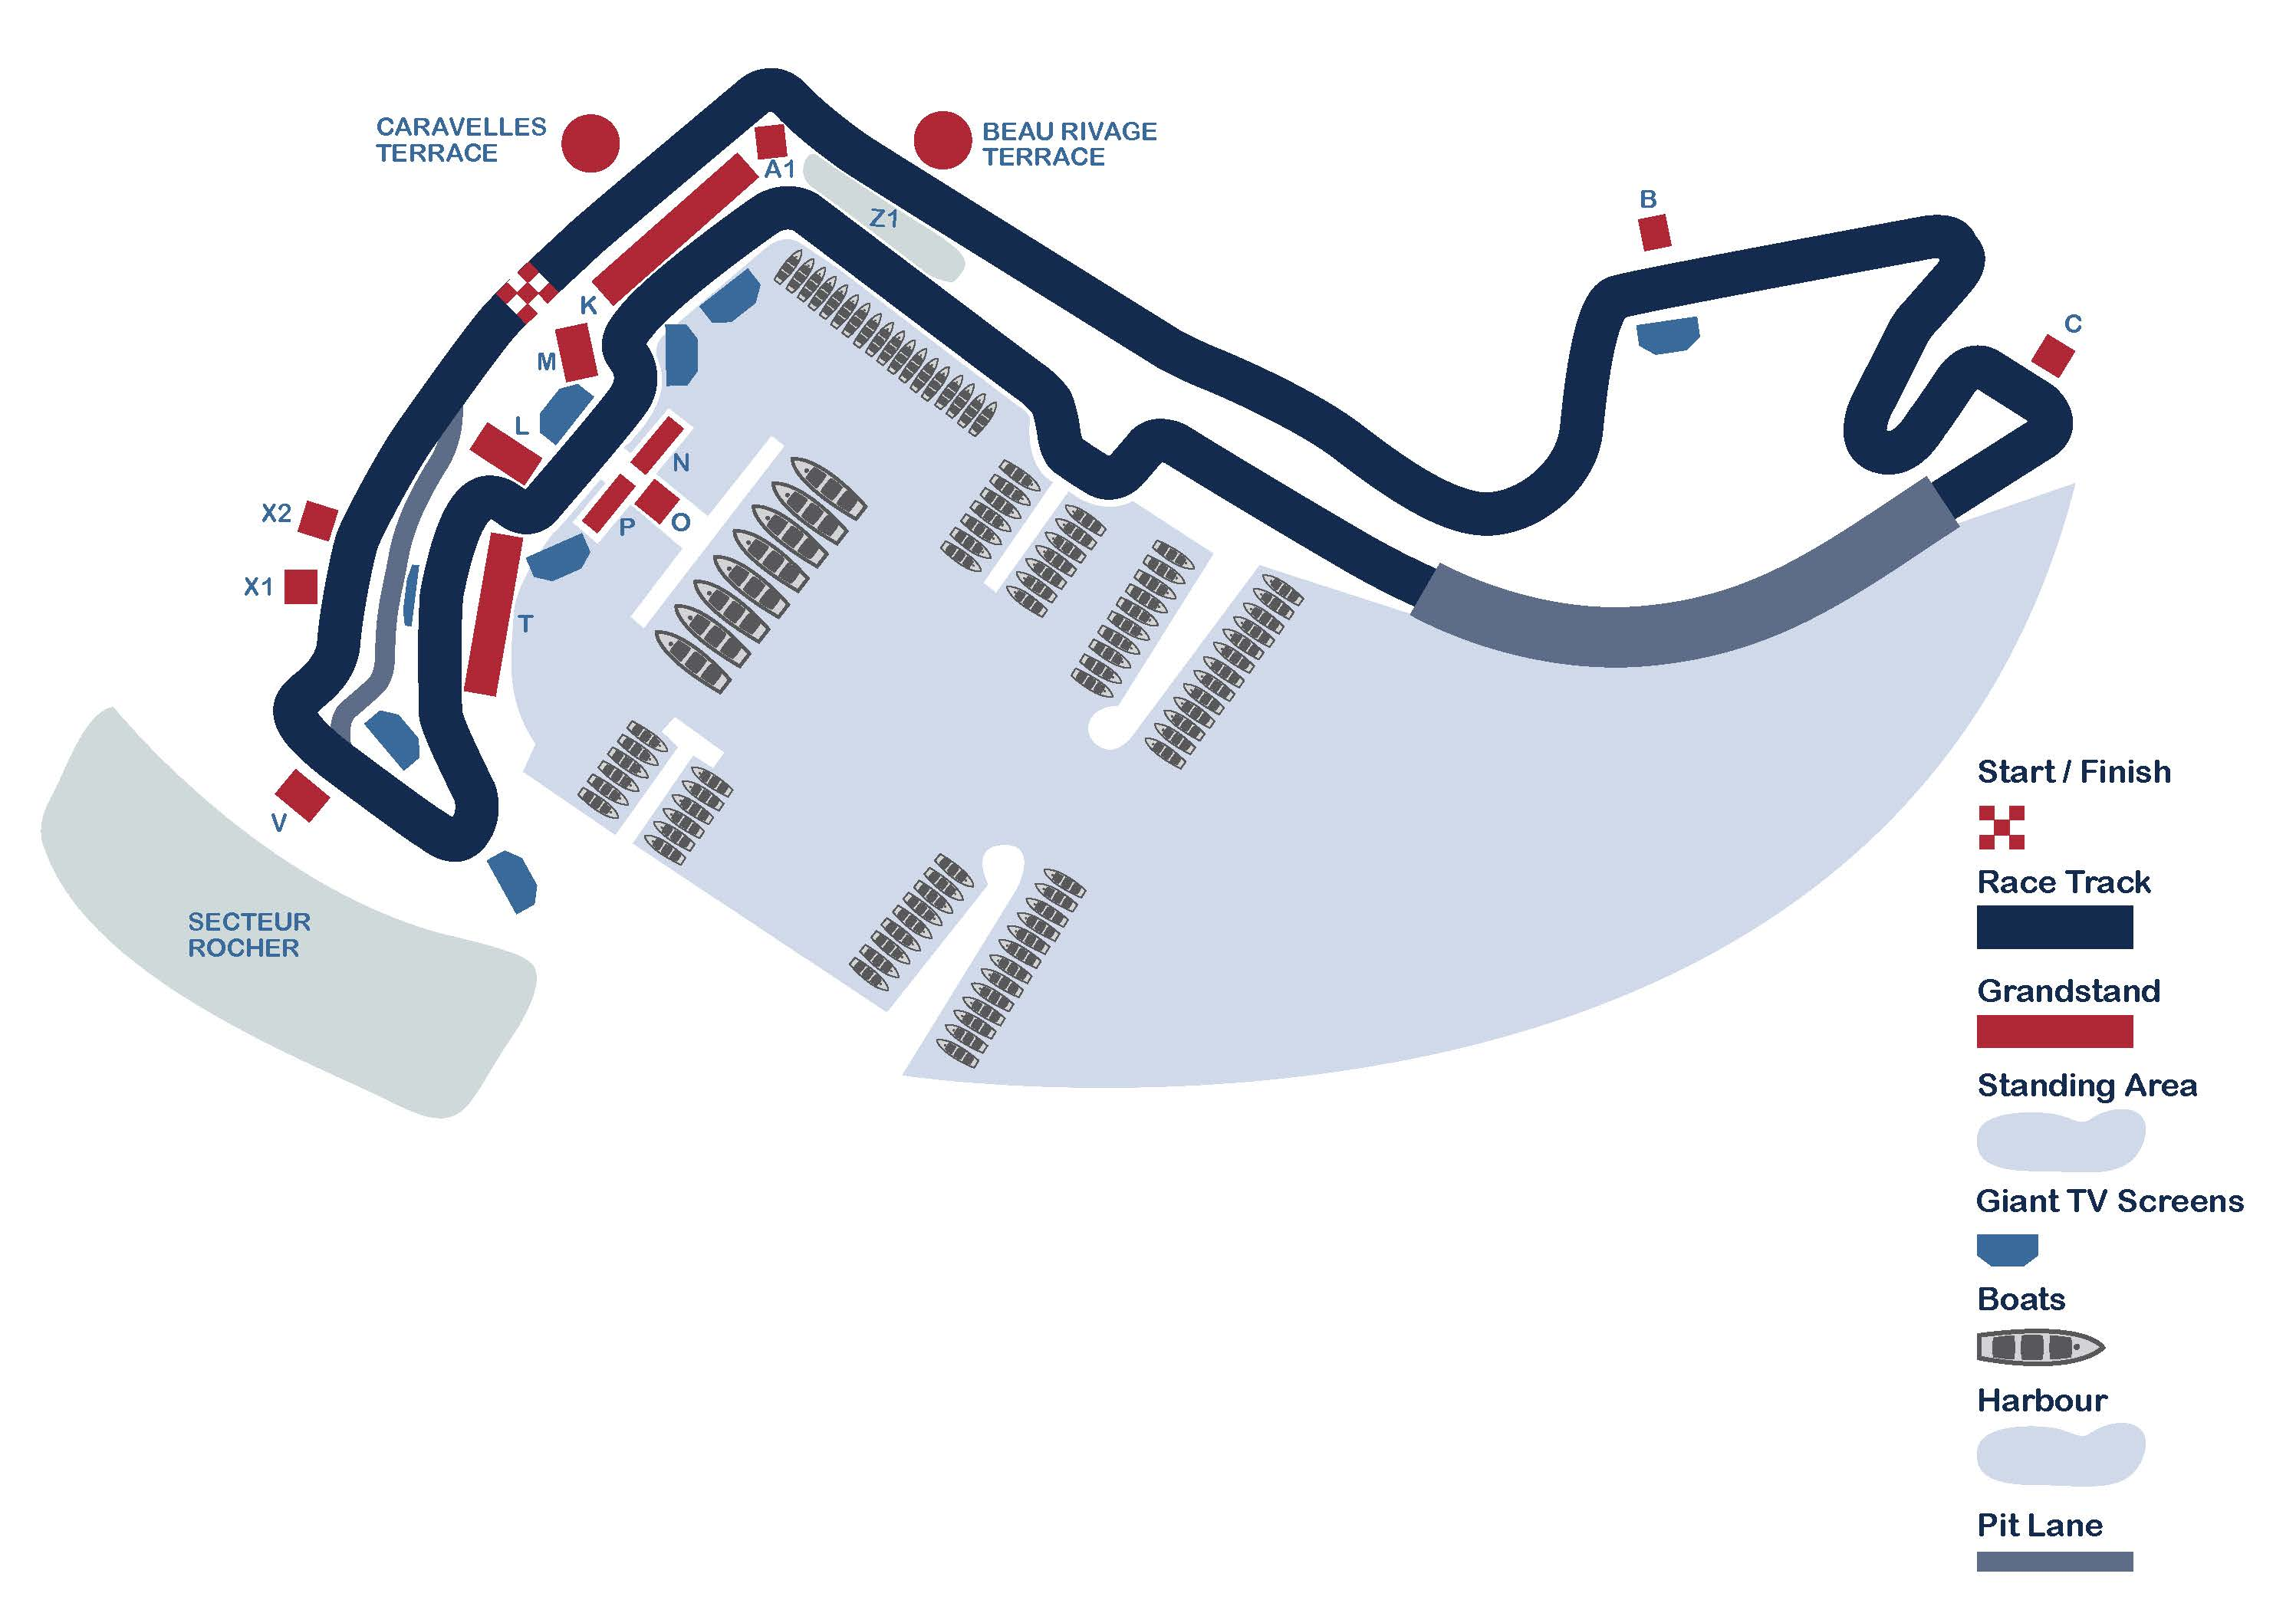 Monaco Grand Prix Tickets And Hotel Package